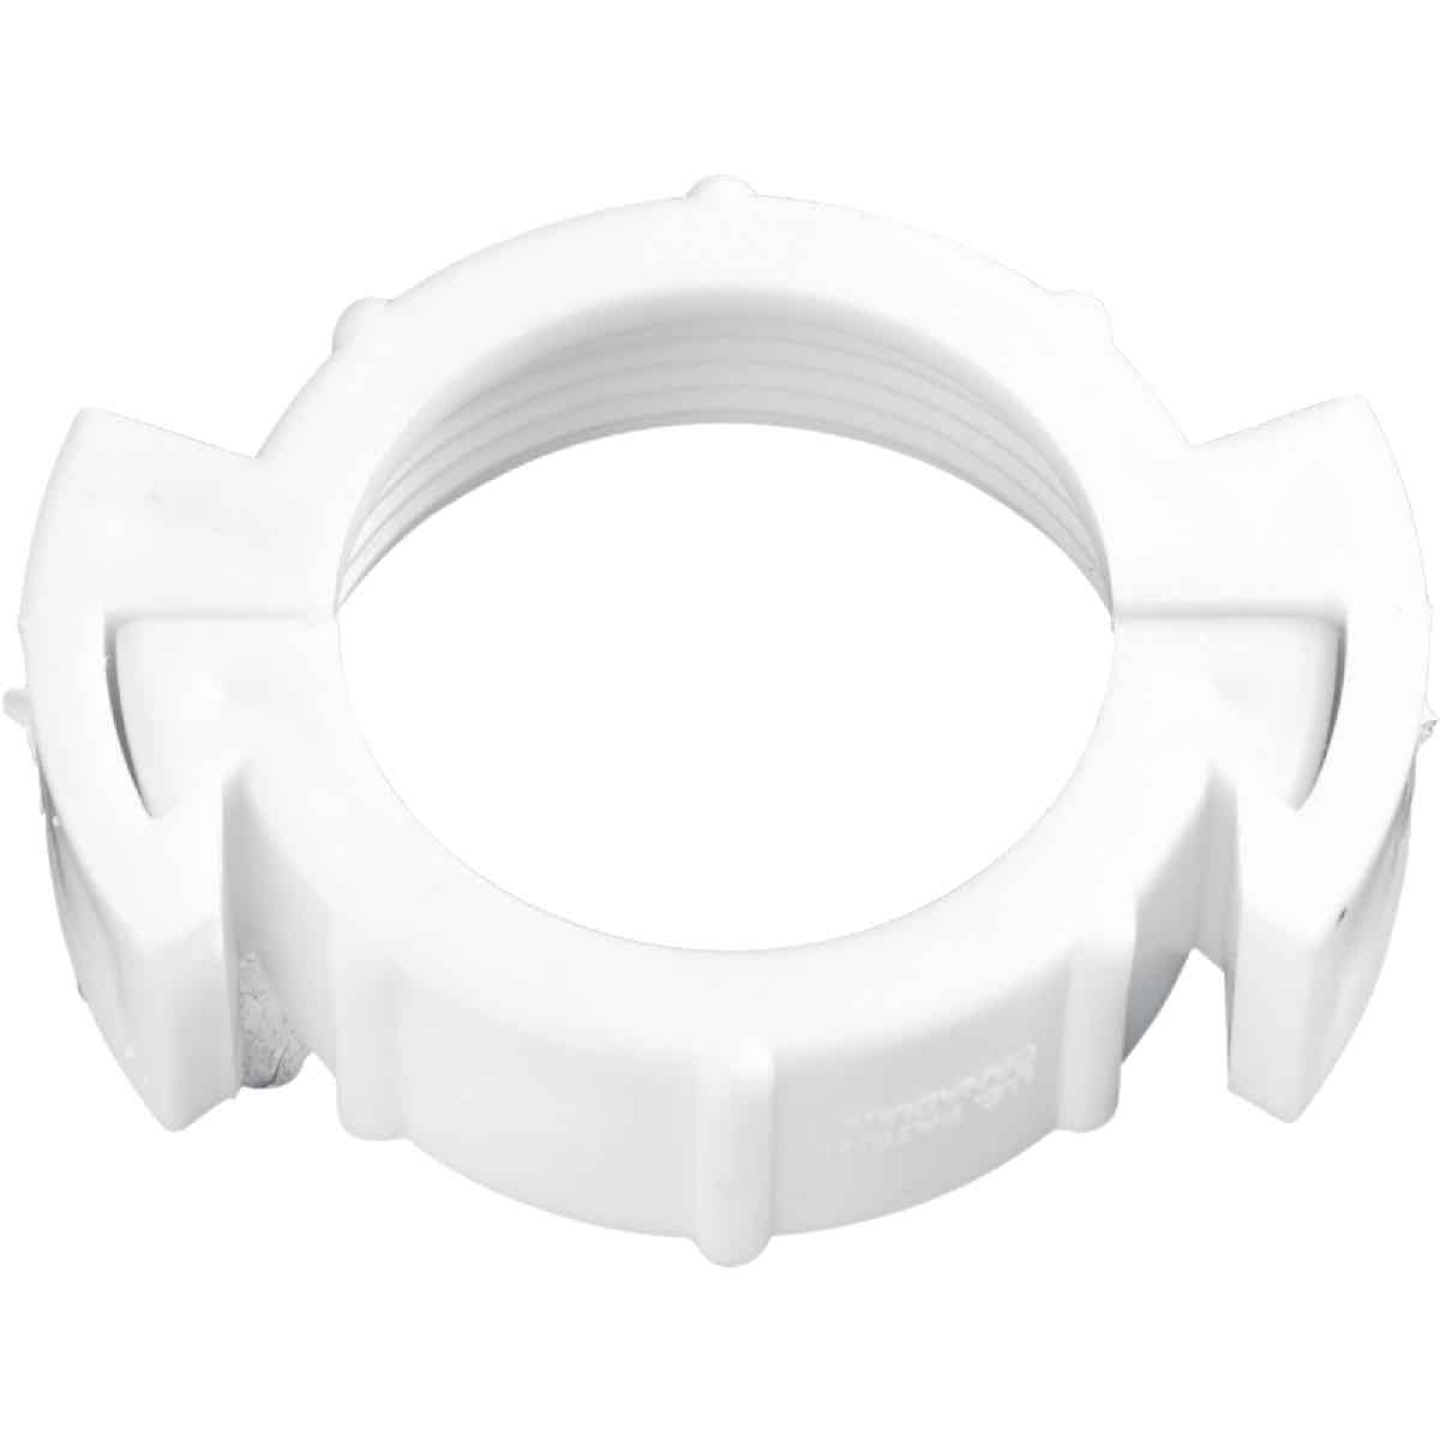 Danco 1-1/4 In. Plastic Slip Joint Nut and Washer Image 3